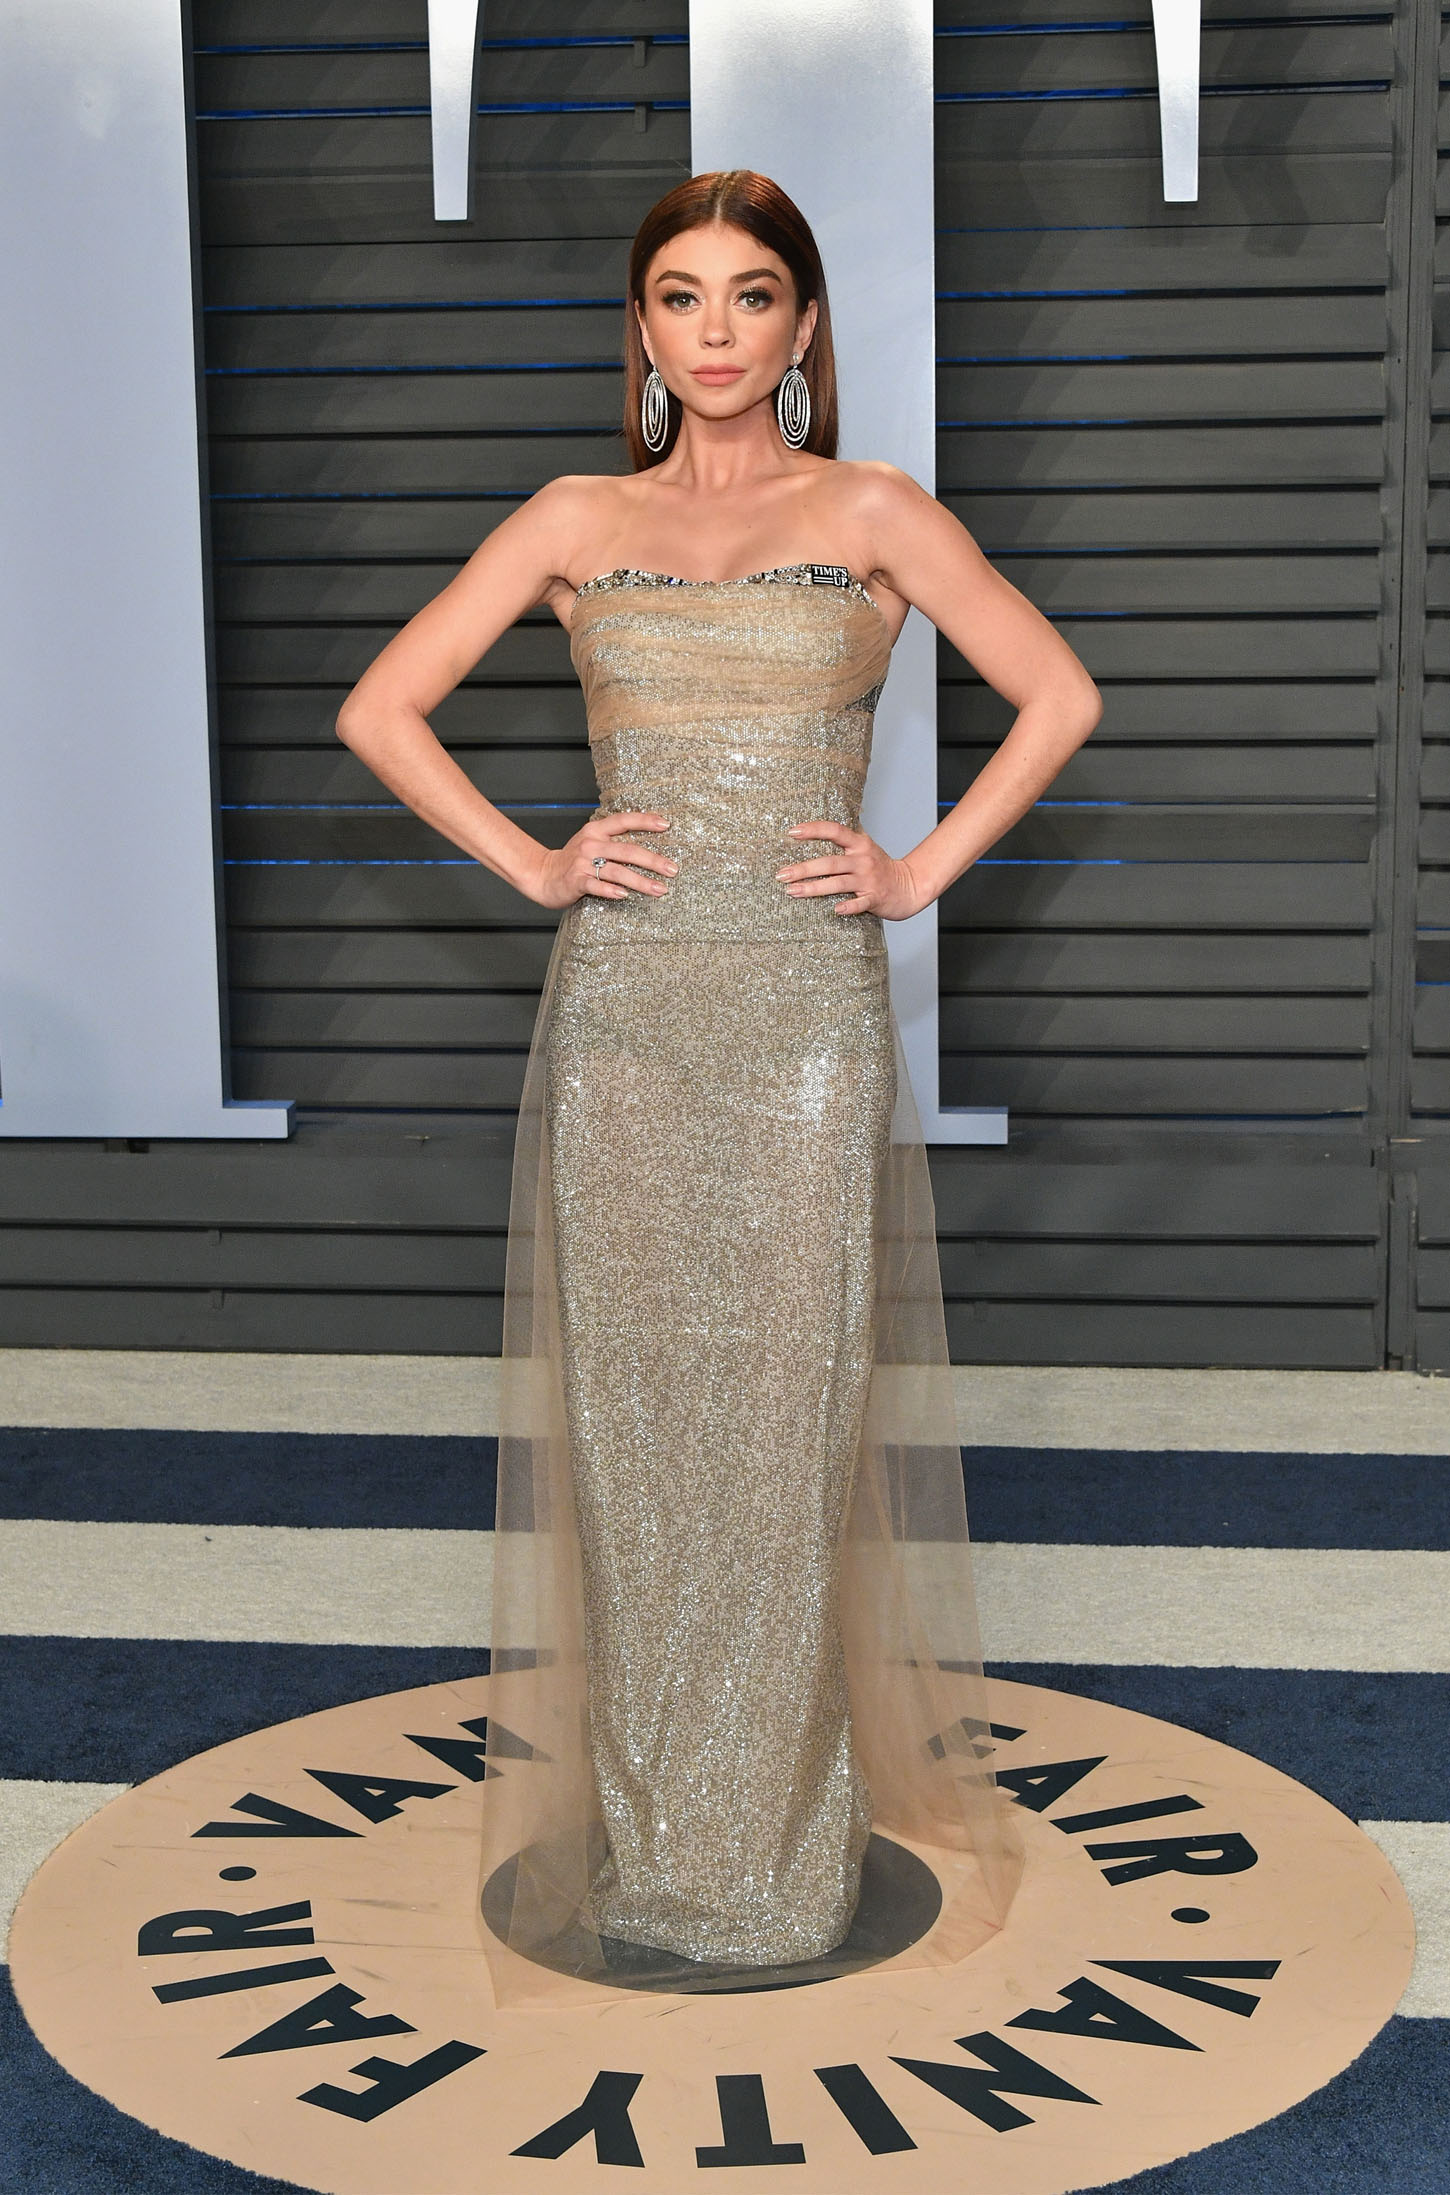 BEVERLY HILLS, CA - MARCH 04:  Sarah Hyland attends the 2018 Vanity Fair Oscar Party hosted by Radhika Jones at Wallis Annenberg Center for the Performing Arts on March 4, 2018 in Beverly Hills, California.  (Photo by Dia Dipasupil/Getty Images)